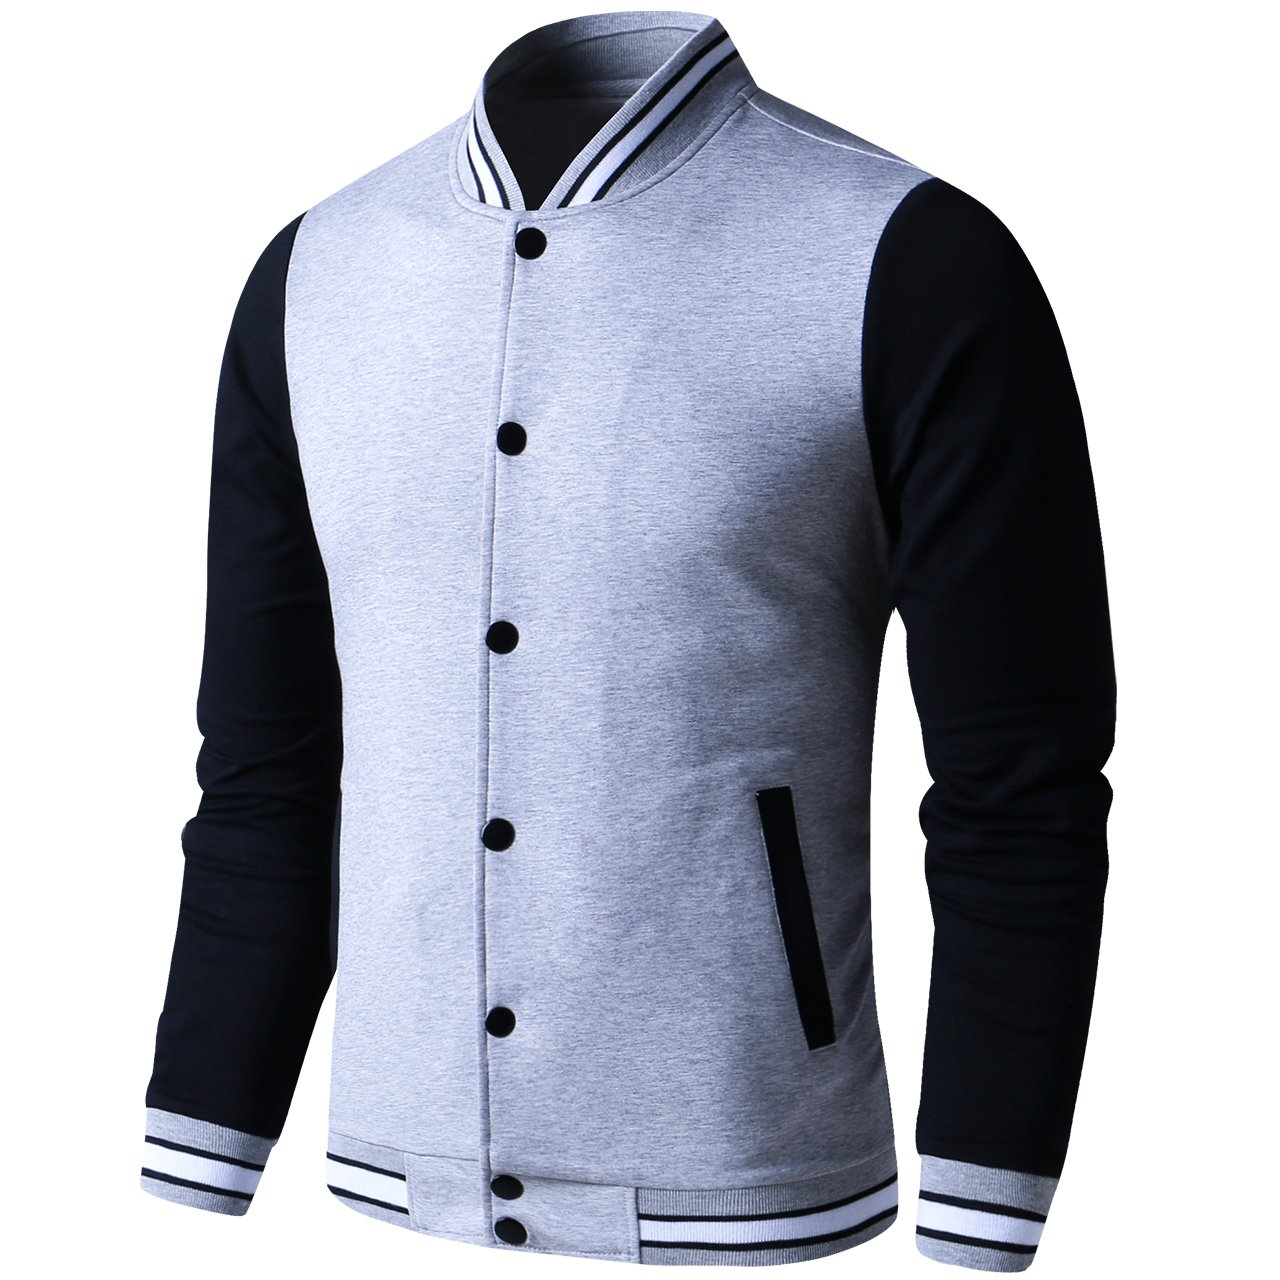 aebf26b511 LTIFONE Mens Lightweight Varsity Jacket Button Down Baseball College  Letterman Jacket